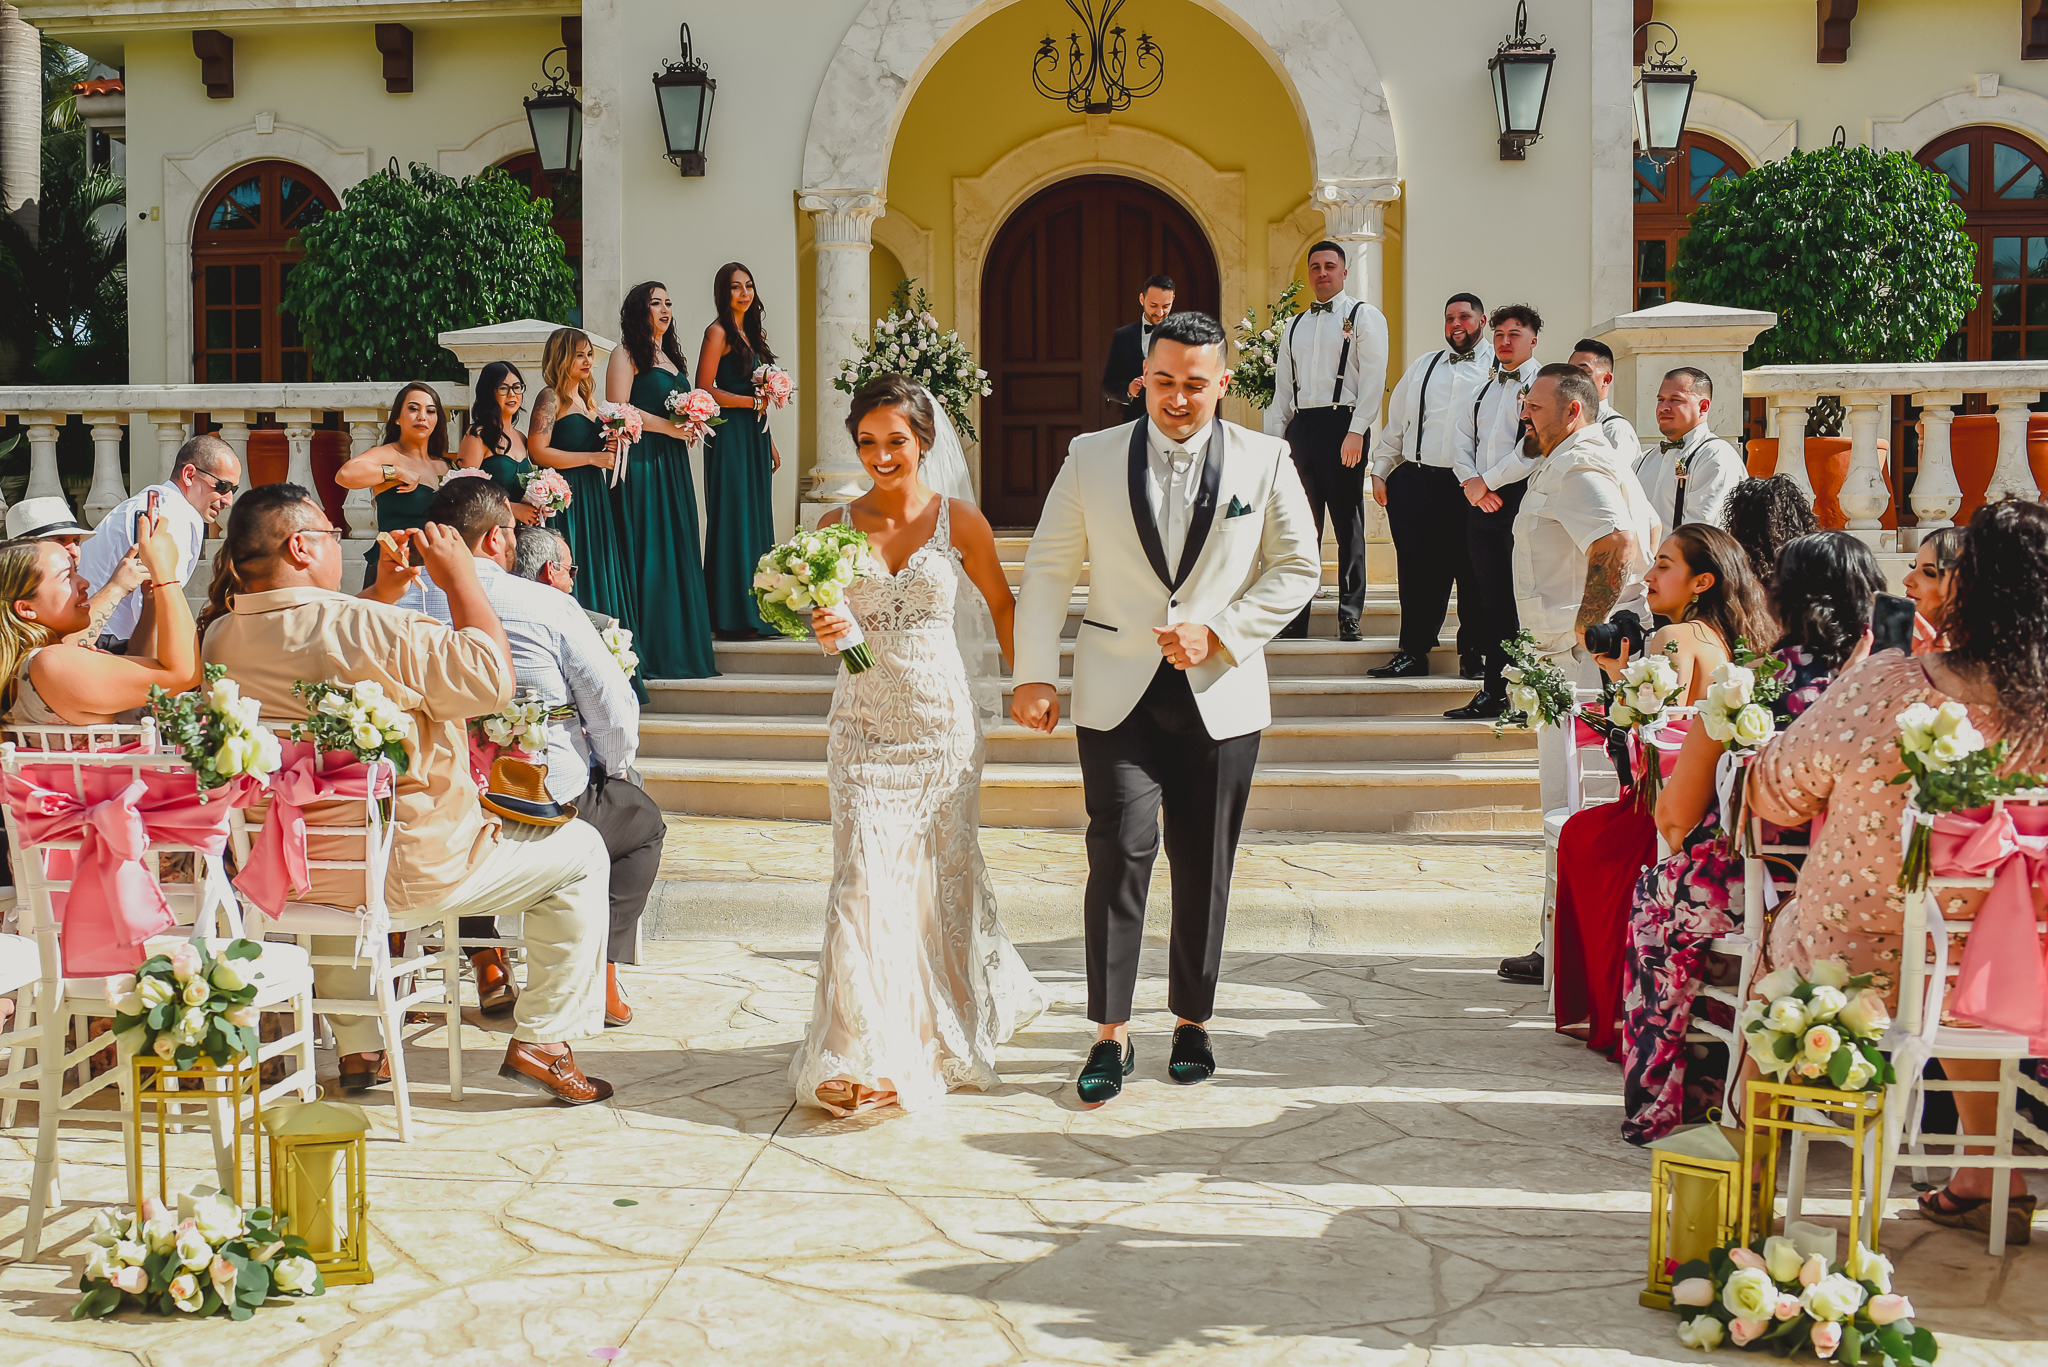 Villa la joya Wedding